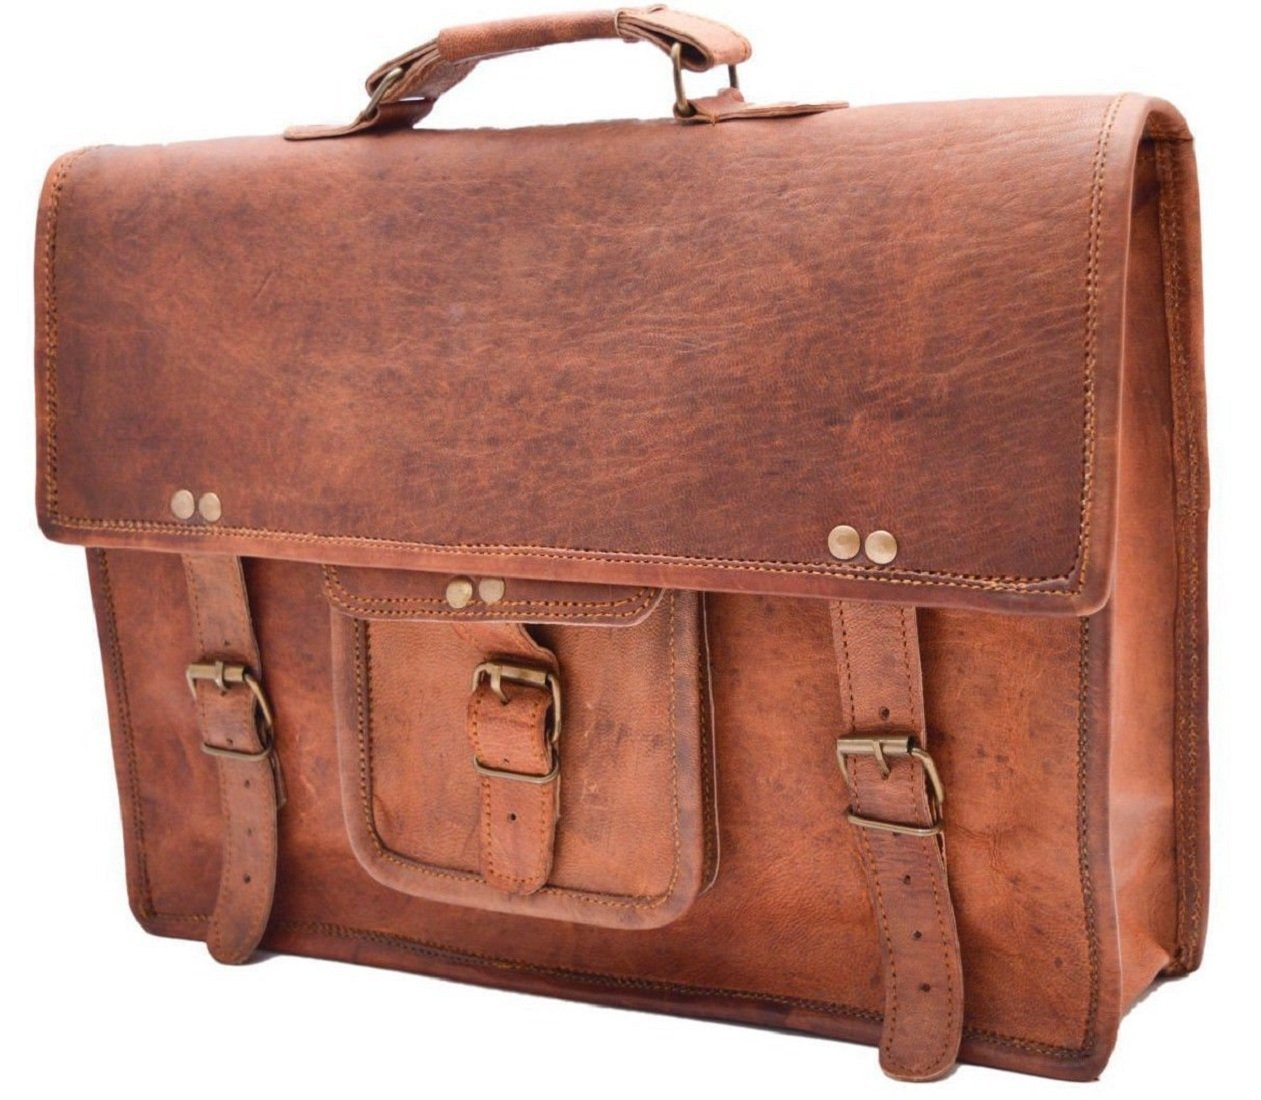 4c47ce8df7bf Mk Bags real leather laptop office briefcase bag size (L) 15 (H) 11 (W) 4  INCHES 4625 - Buy Mk Bags real leather laptop office briefcase bag size (L)  15 (H) ...